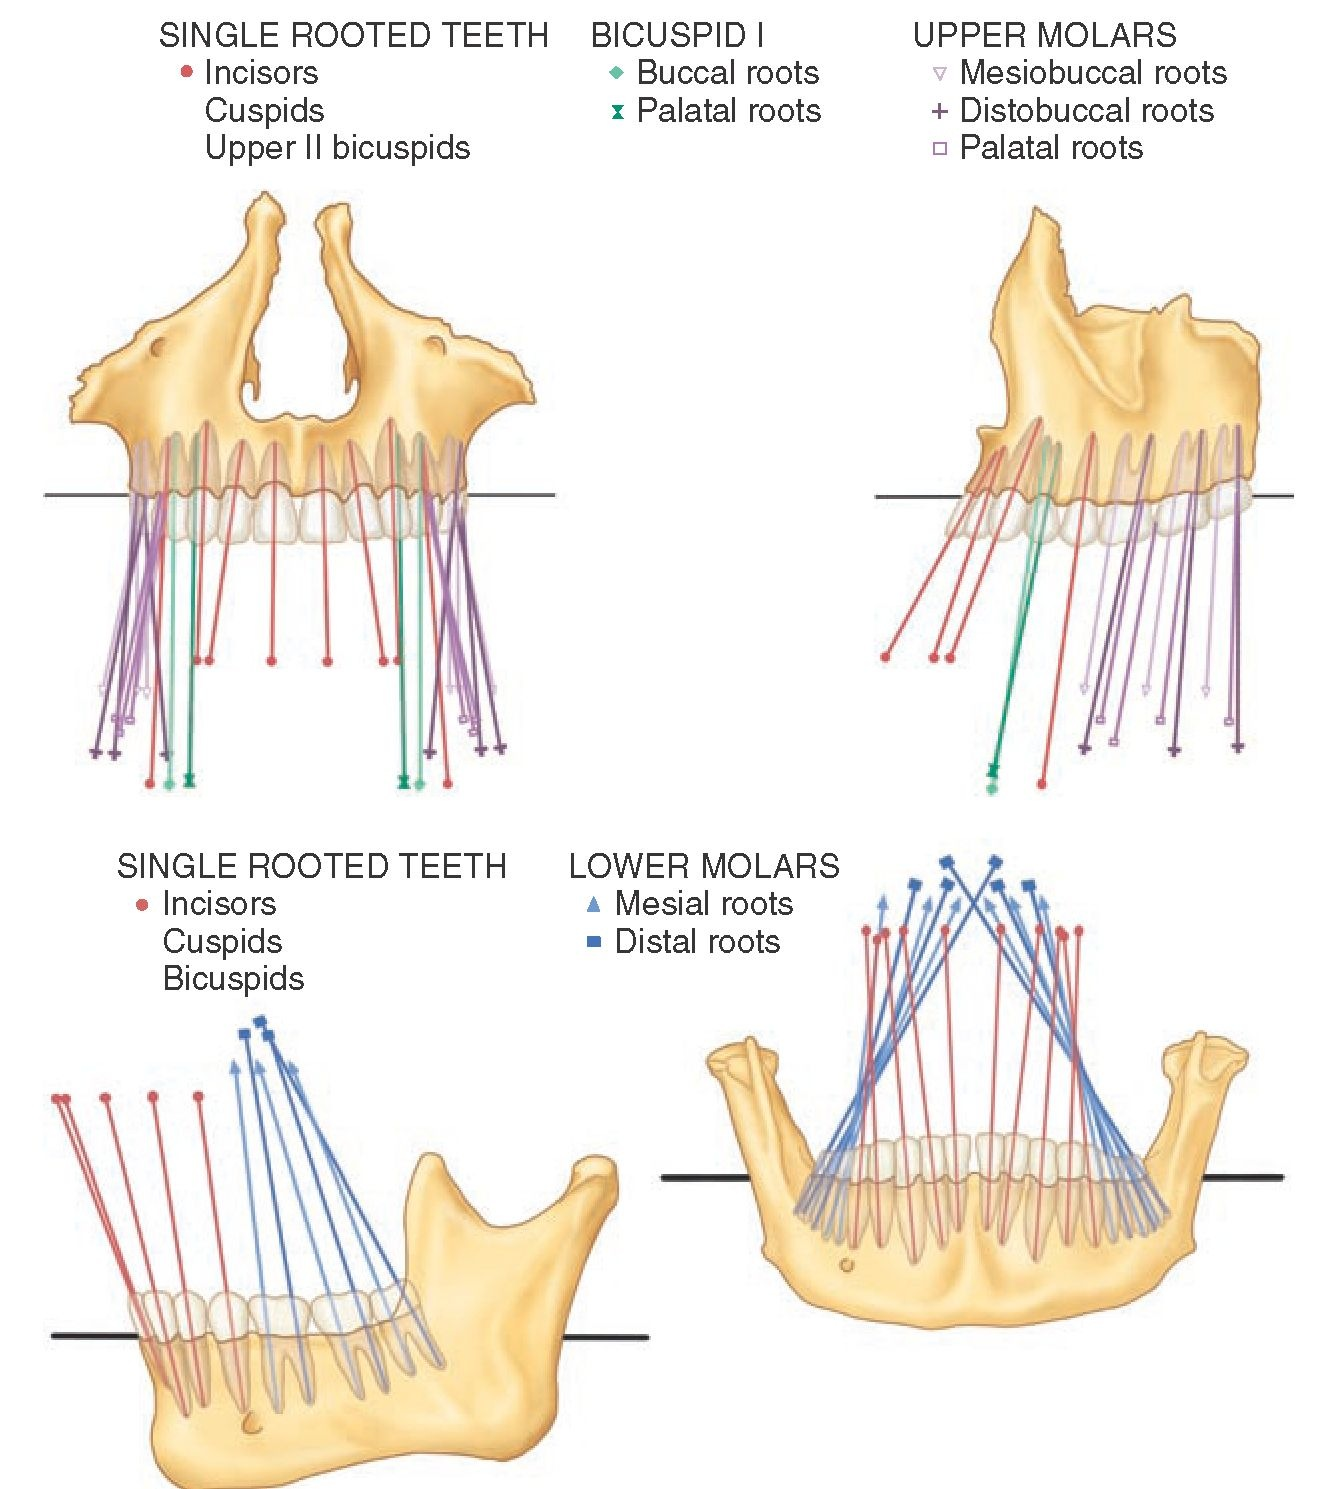 Occlusion Dental Anatomy Physiology And Occlusion Part 3